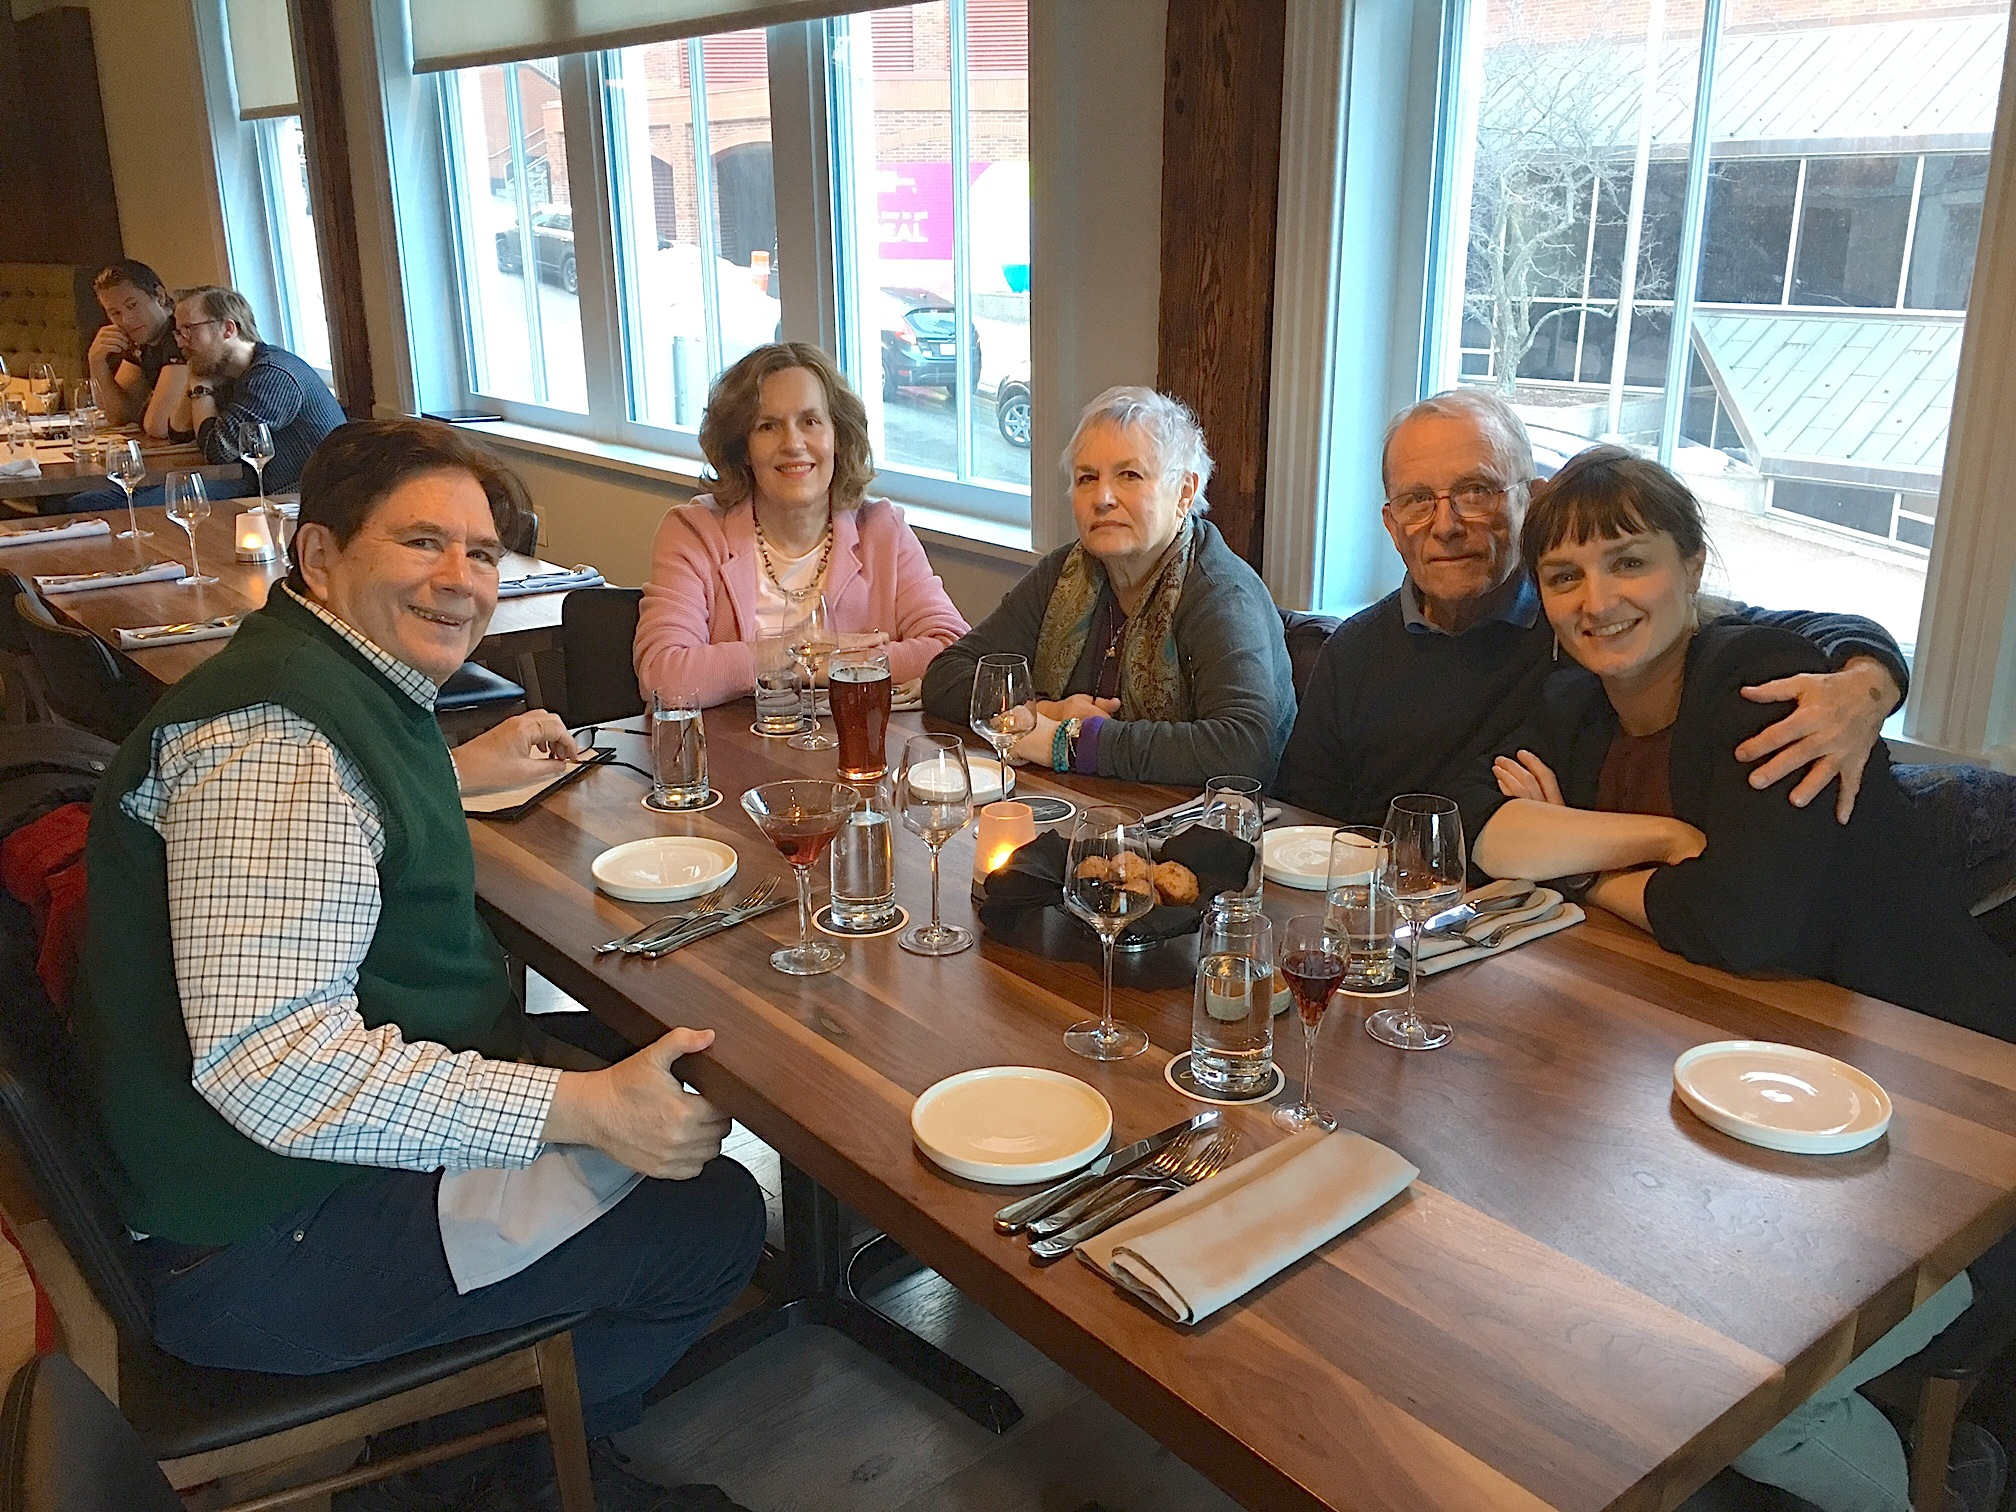 John, Lorraine, Susan, Barry & Wendy Barner, Susan & Barry's 5oth Wedding anniversary dinner